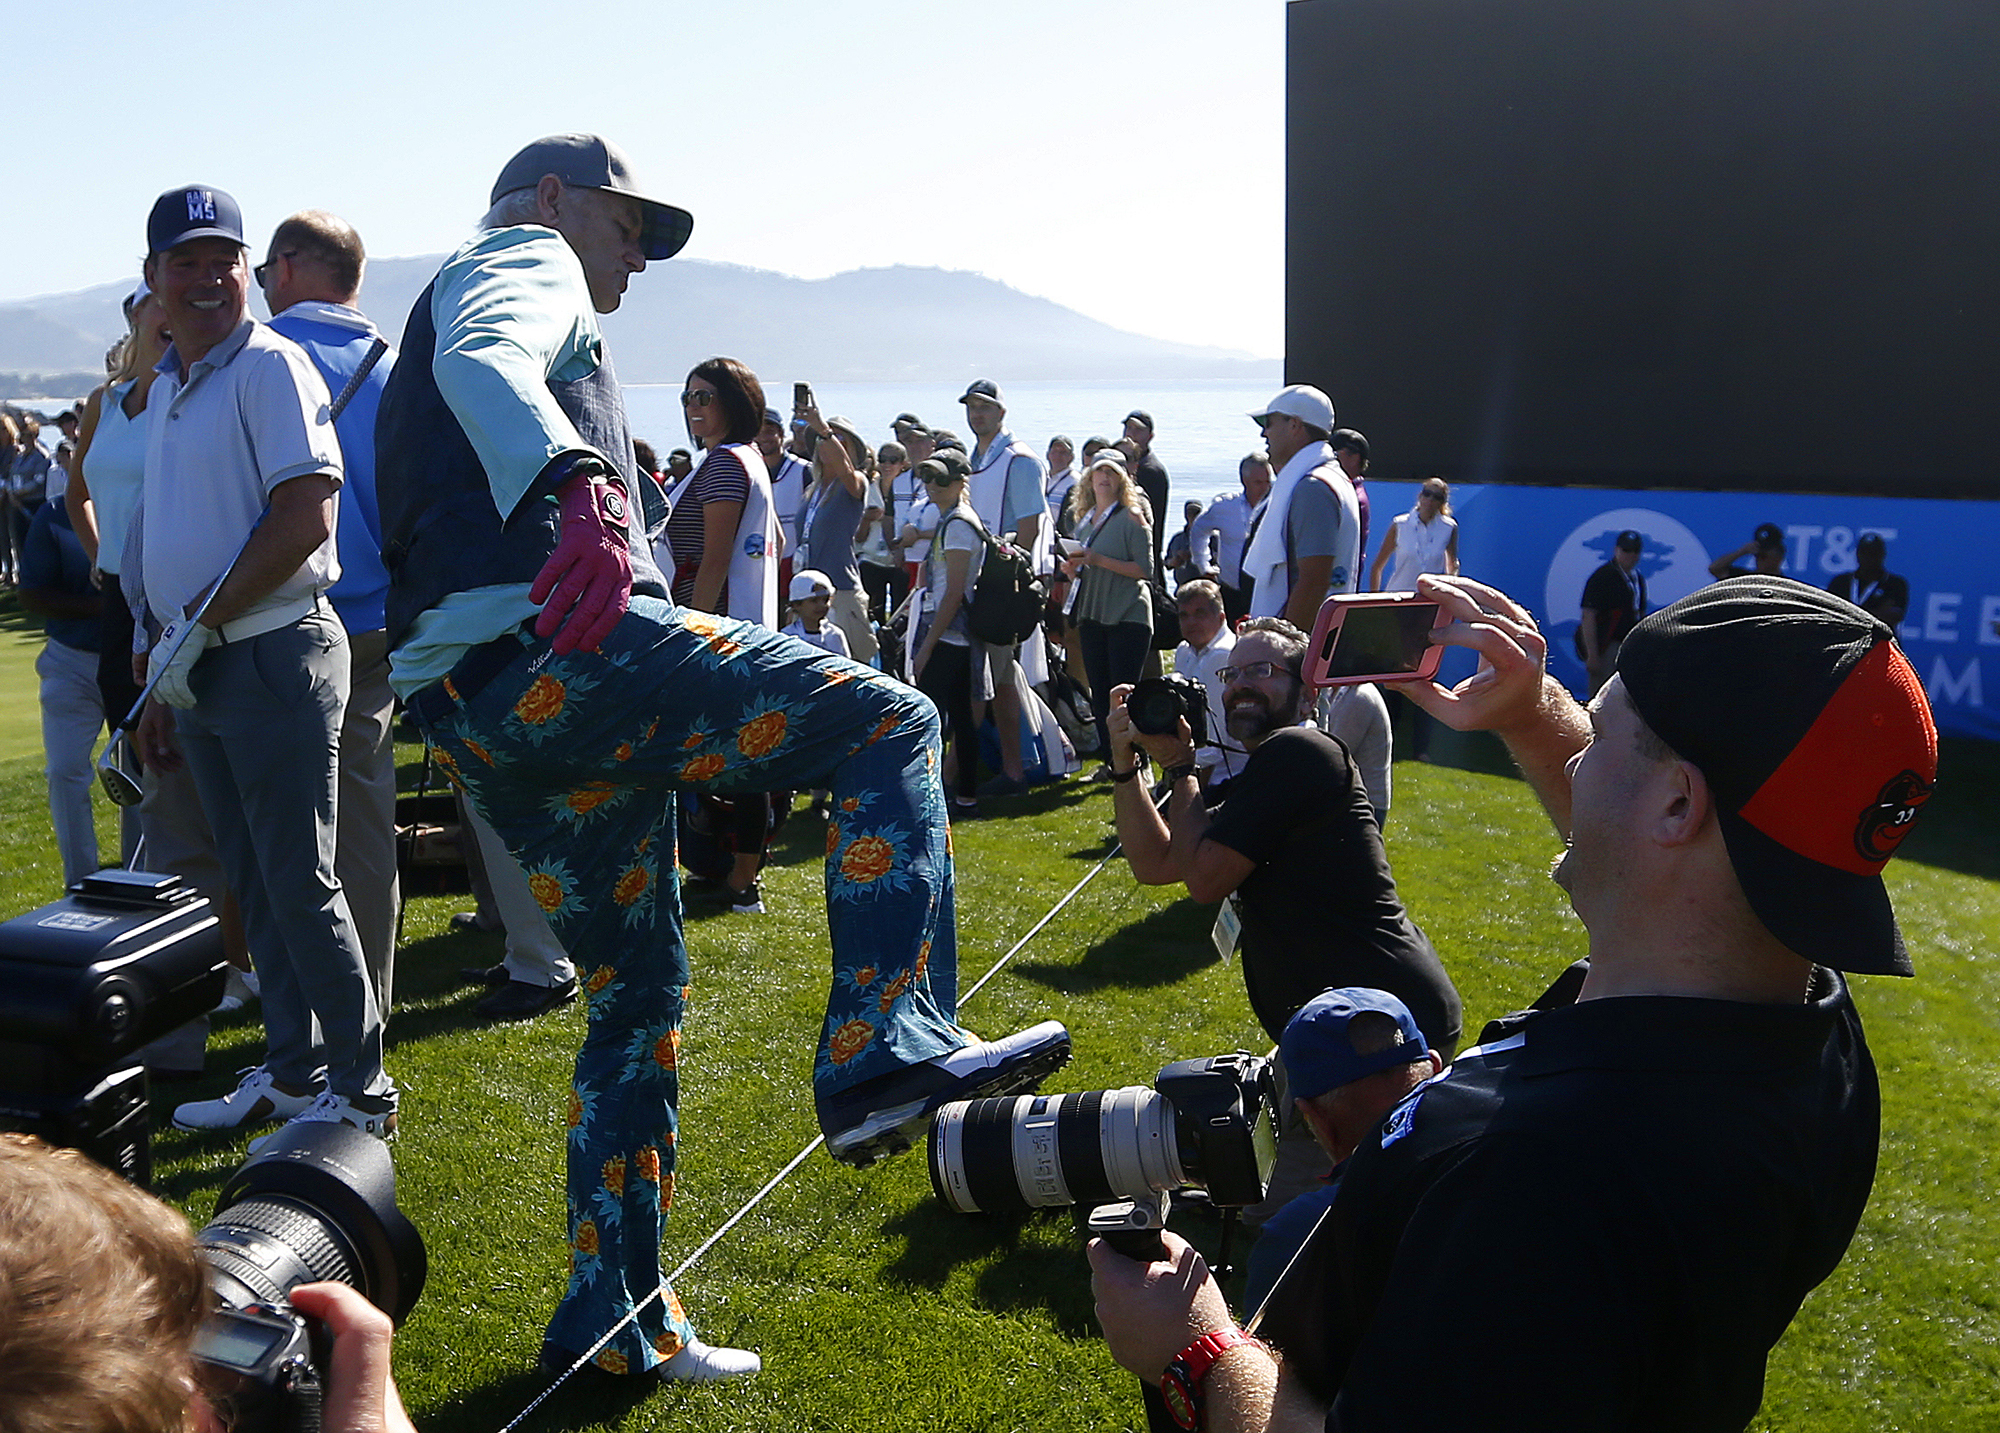 Pebble Beach National Pro-Am 2018: Dustin Johnson, Beau Hossler Tied for Lead